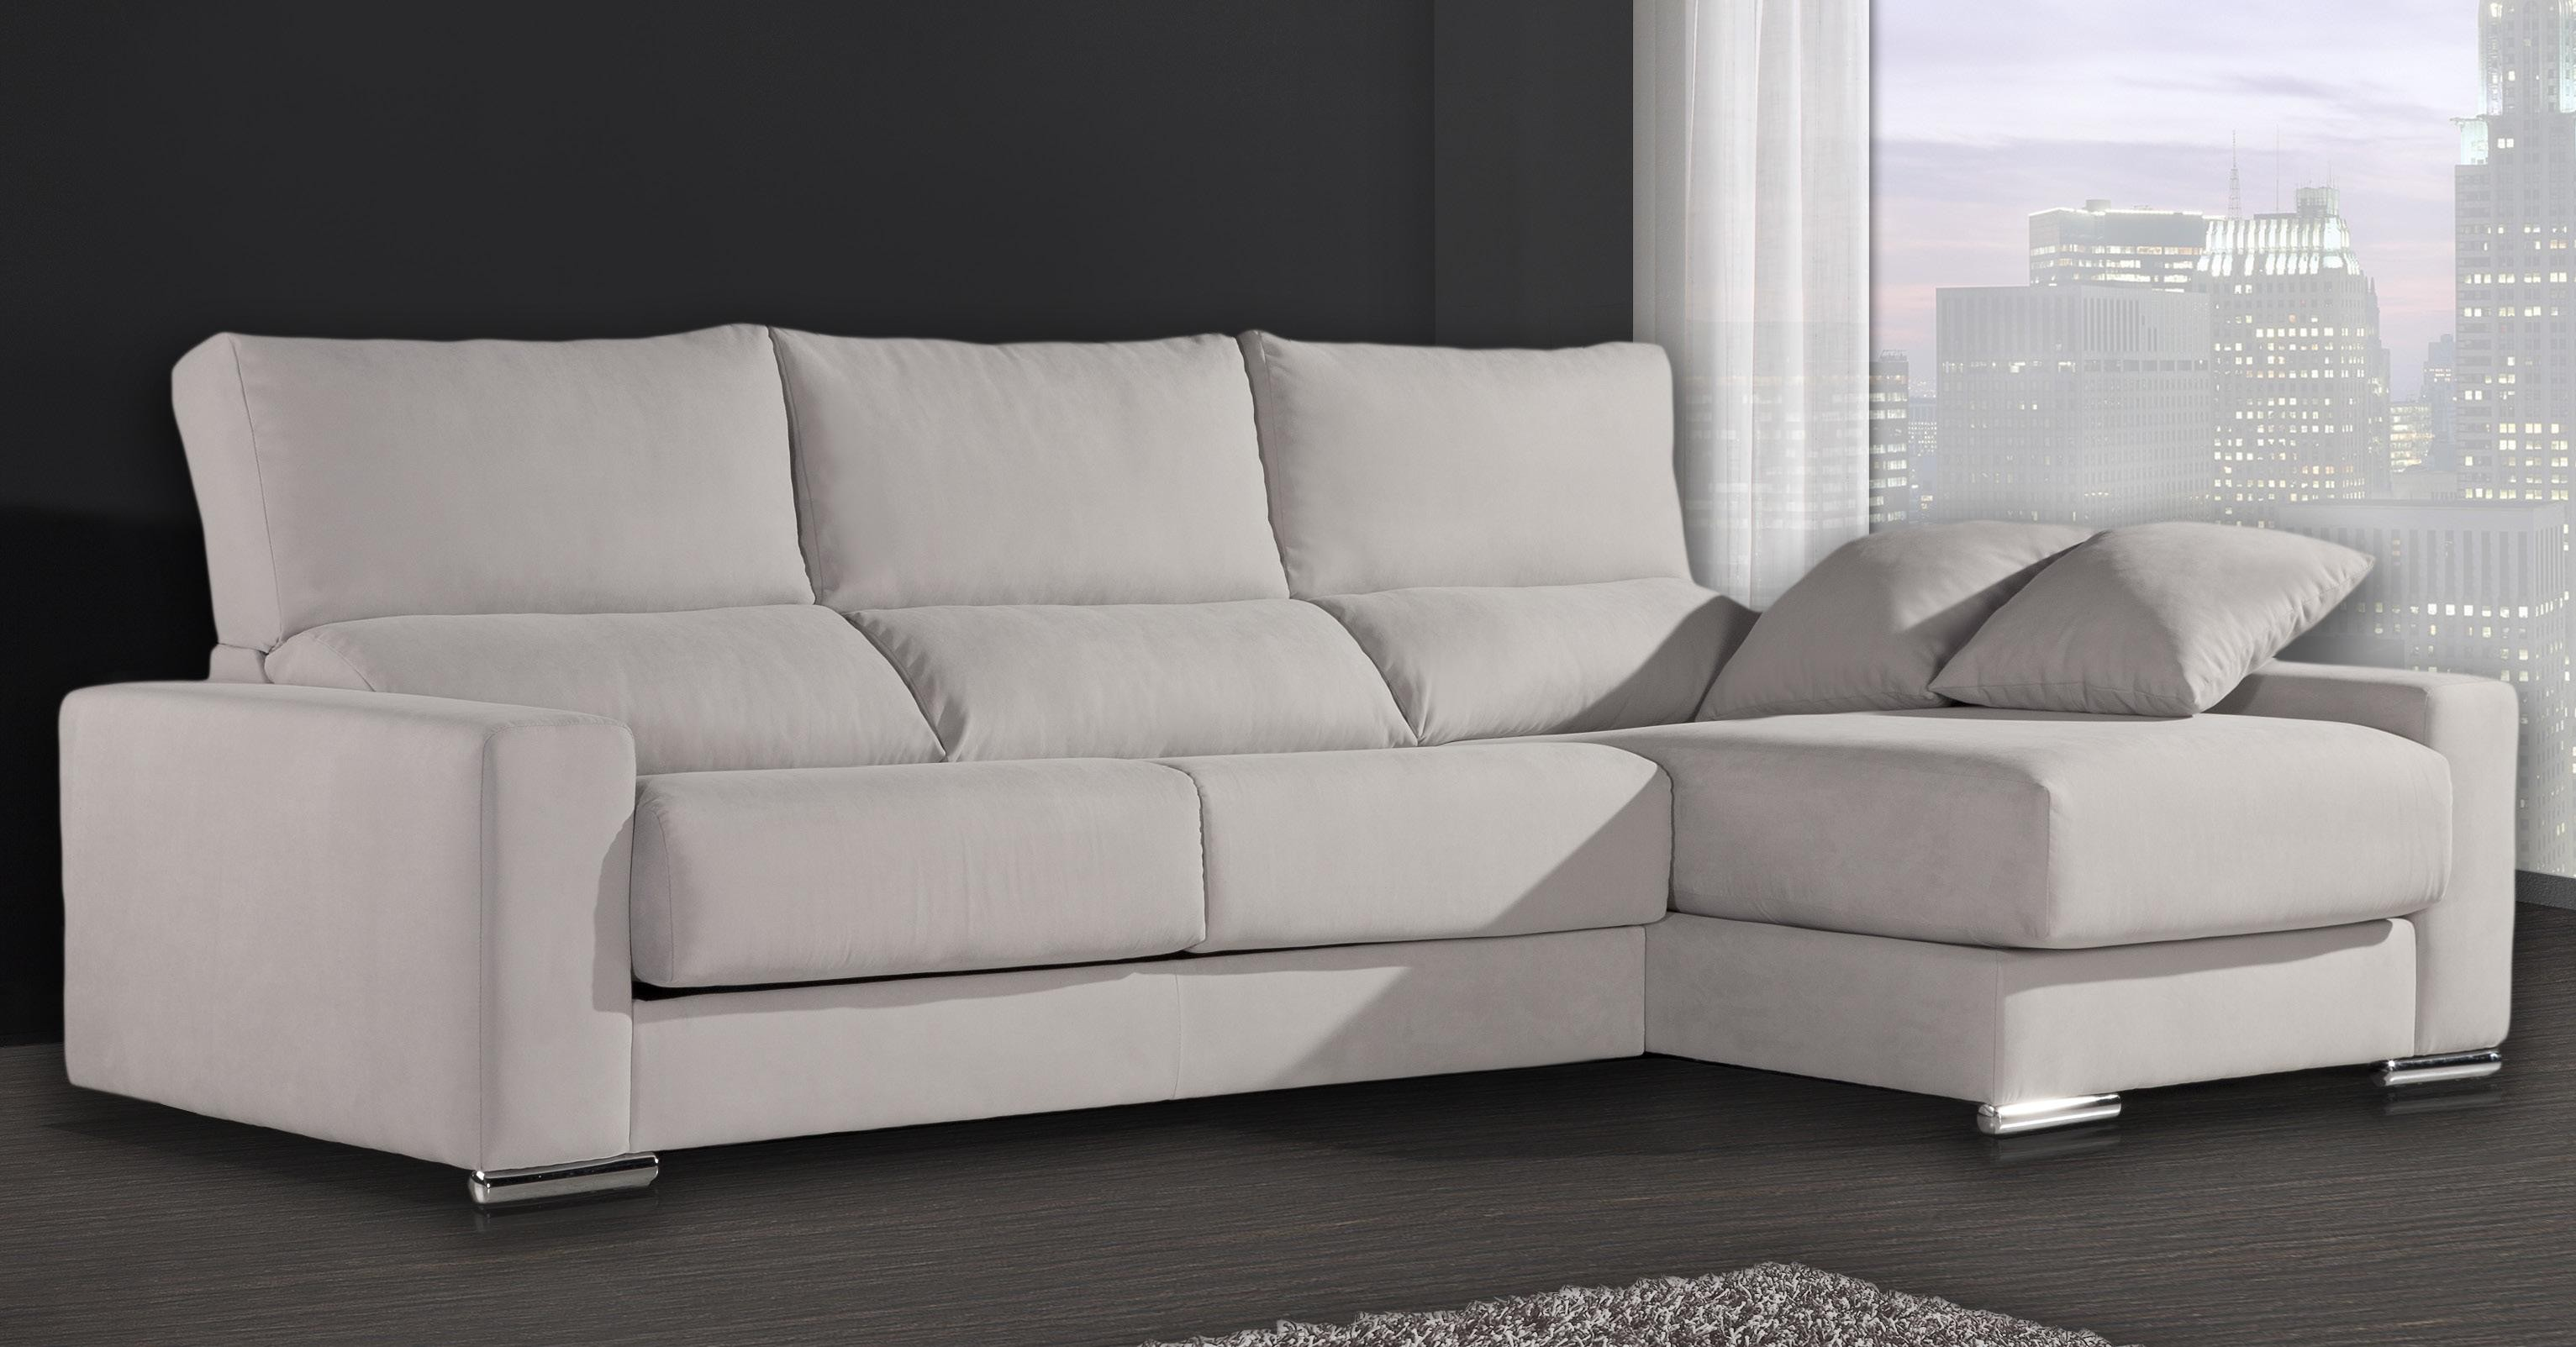 Sofas y chaise longue baratos for Sofa cheslong